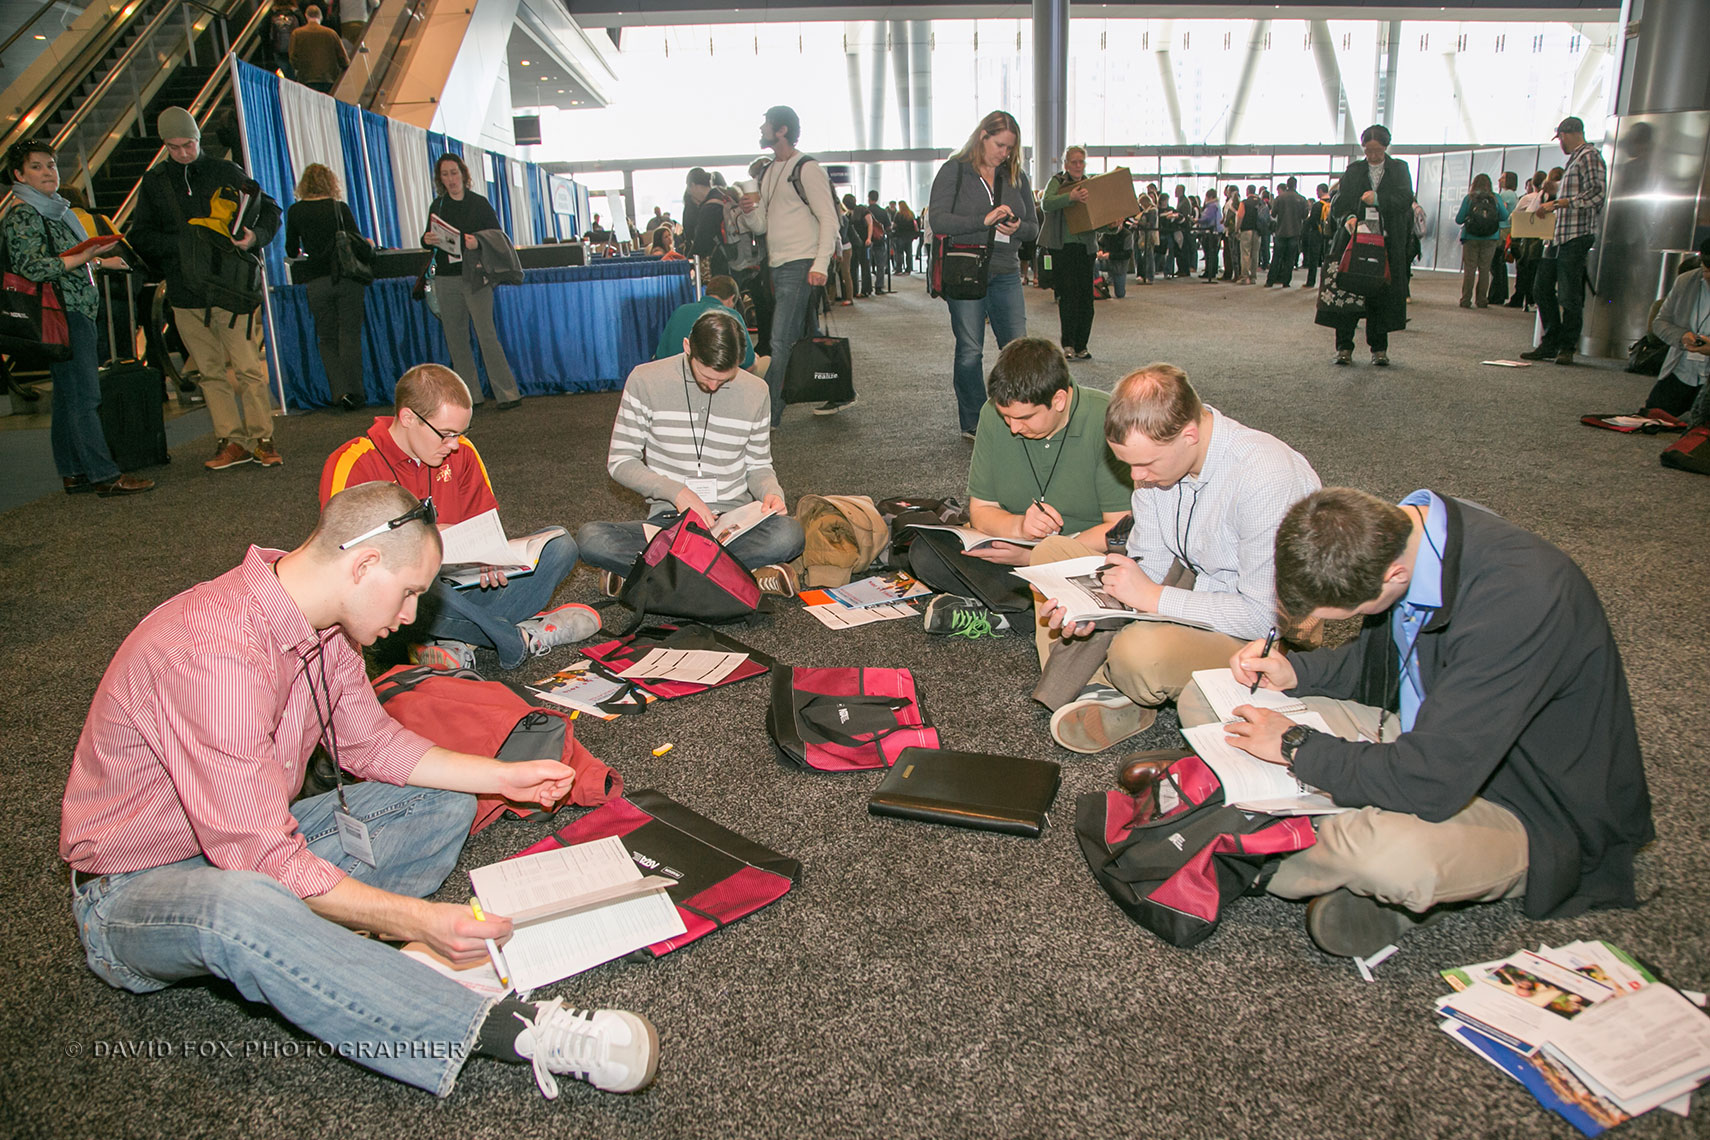 Conference Attendees Sit on Floor and Go Over NASTA Material